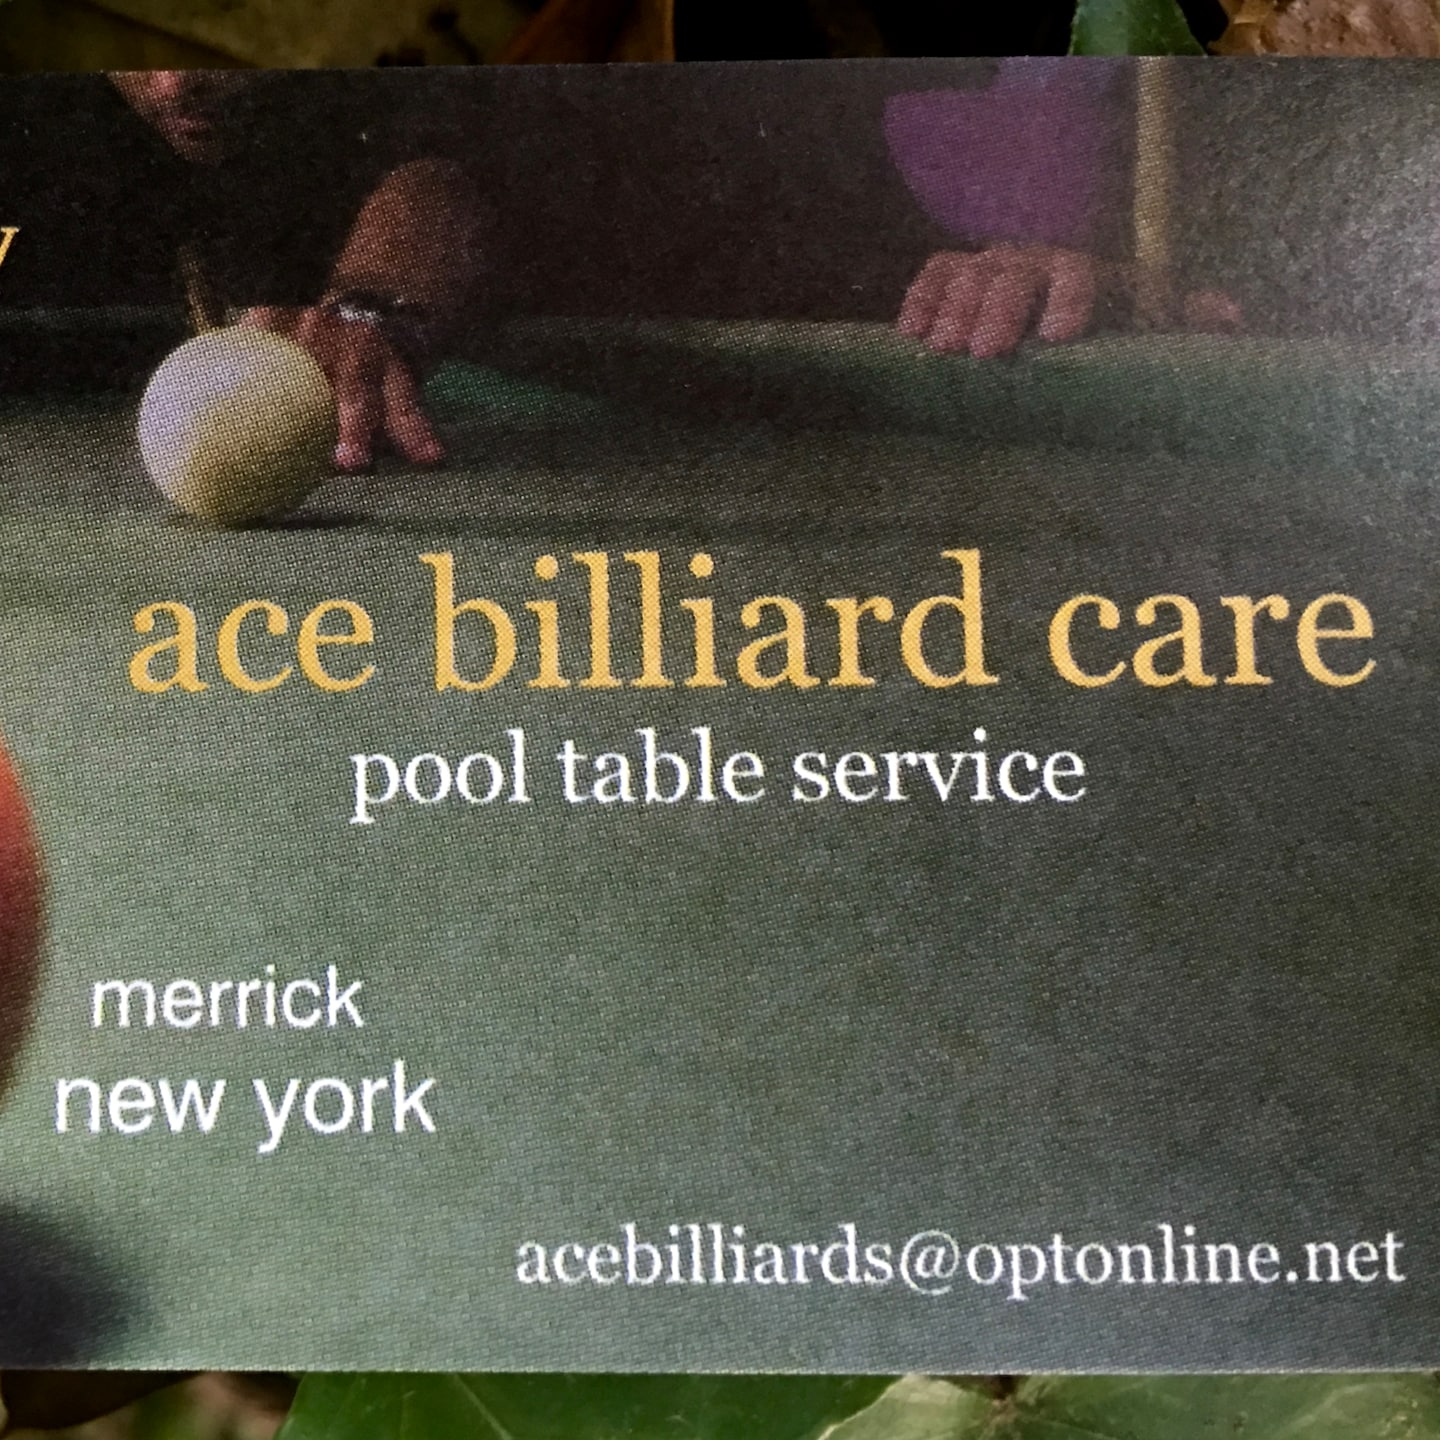 Ace Billiard Care